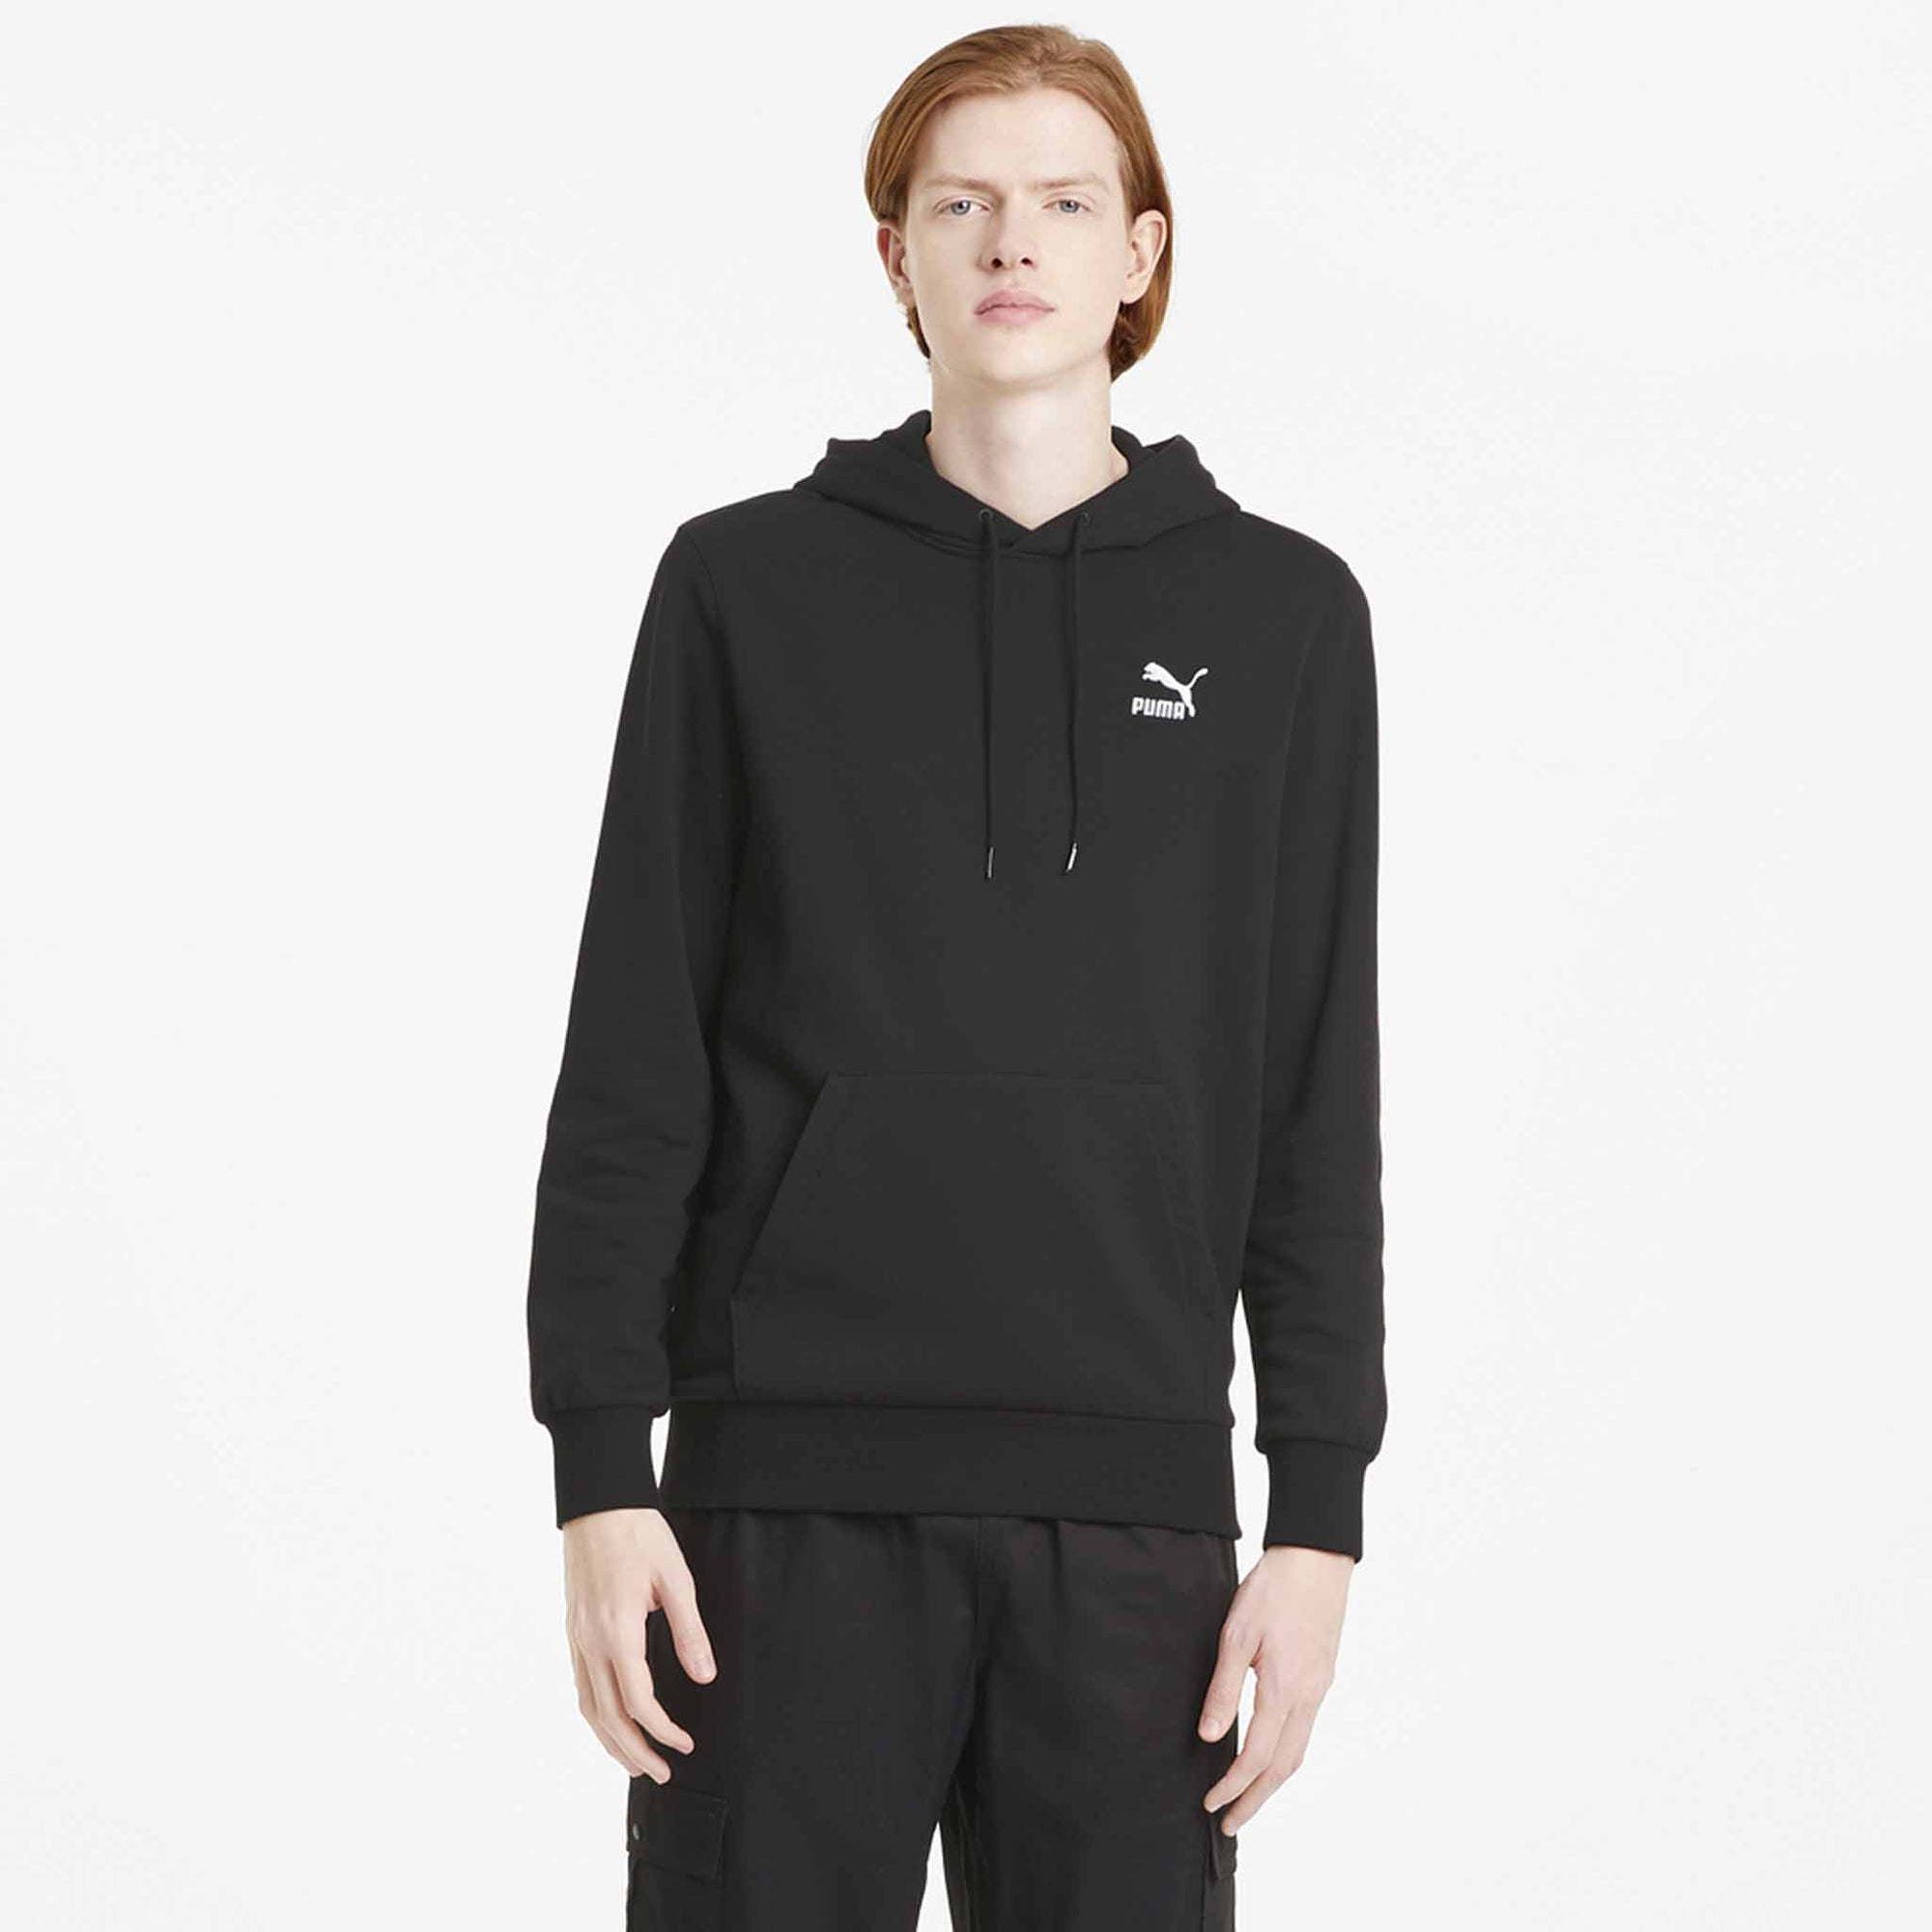 Puma Classics Embroidered Hoodie pour homme noir